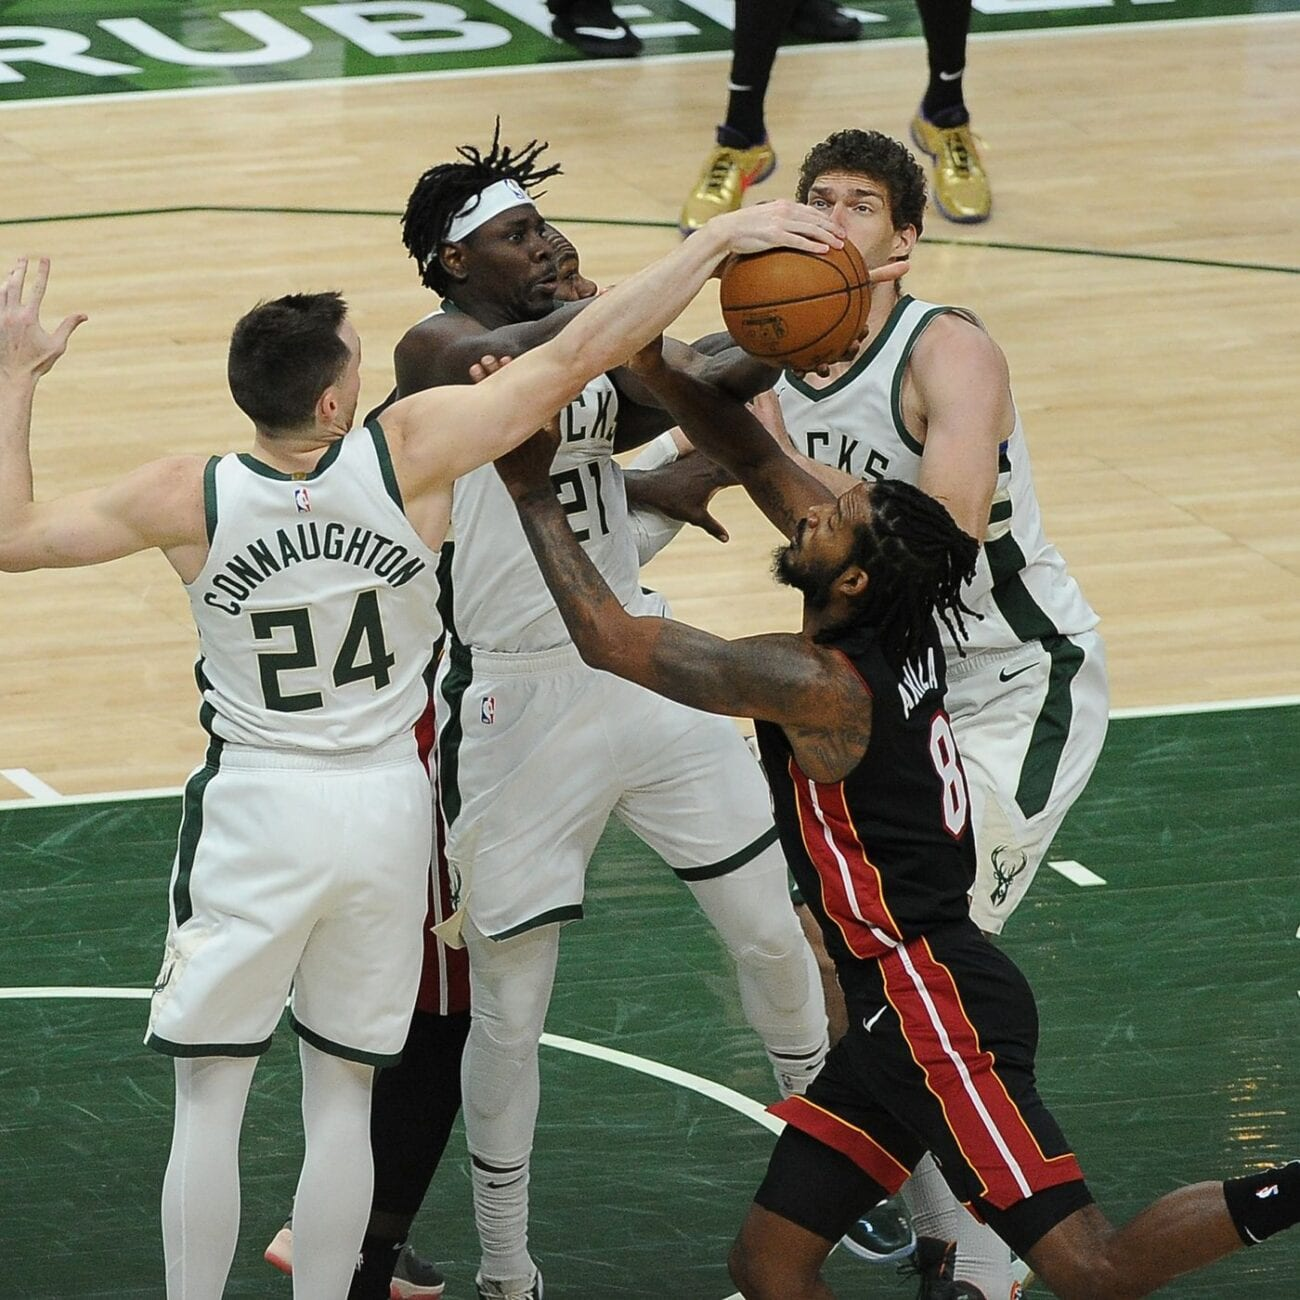 Bucks will face Heats tonight, with the Phoenix Suns second after a breakthrough season. Watch the live stream here.